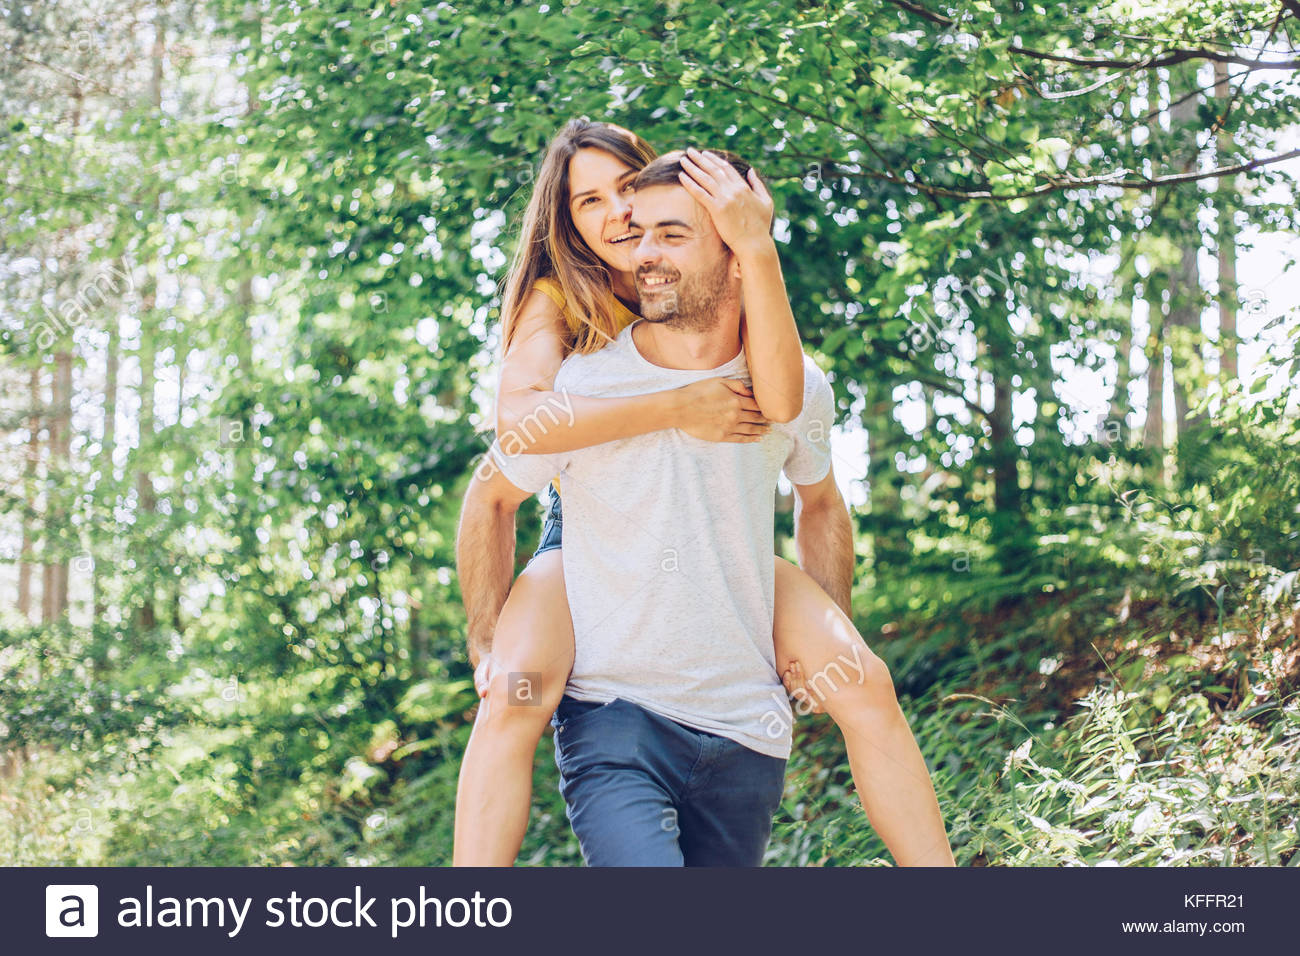 Man carrying woman piggyback - Stock Image